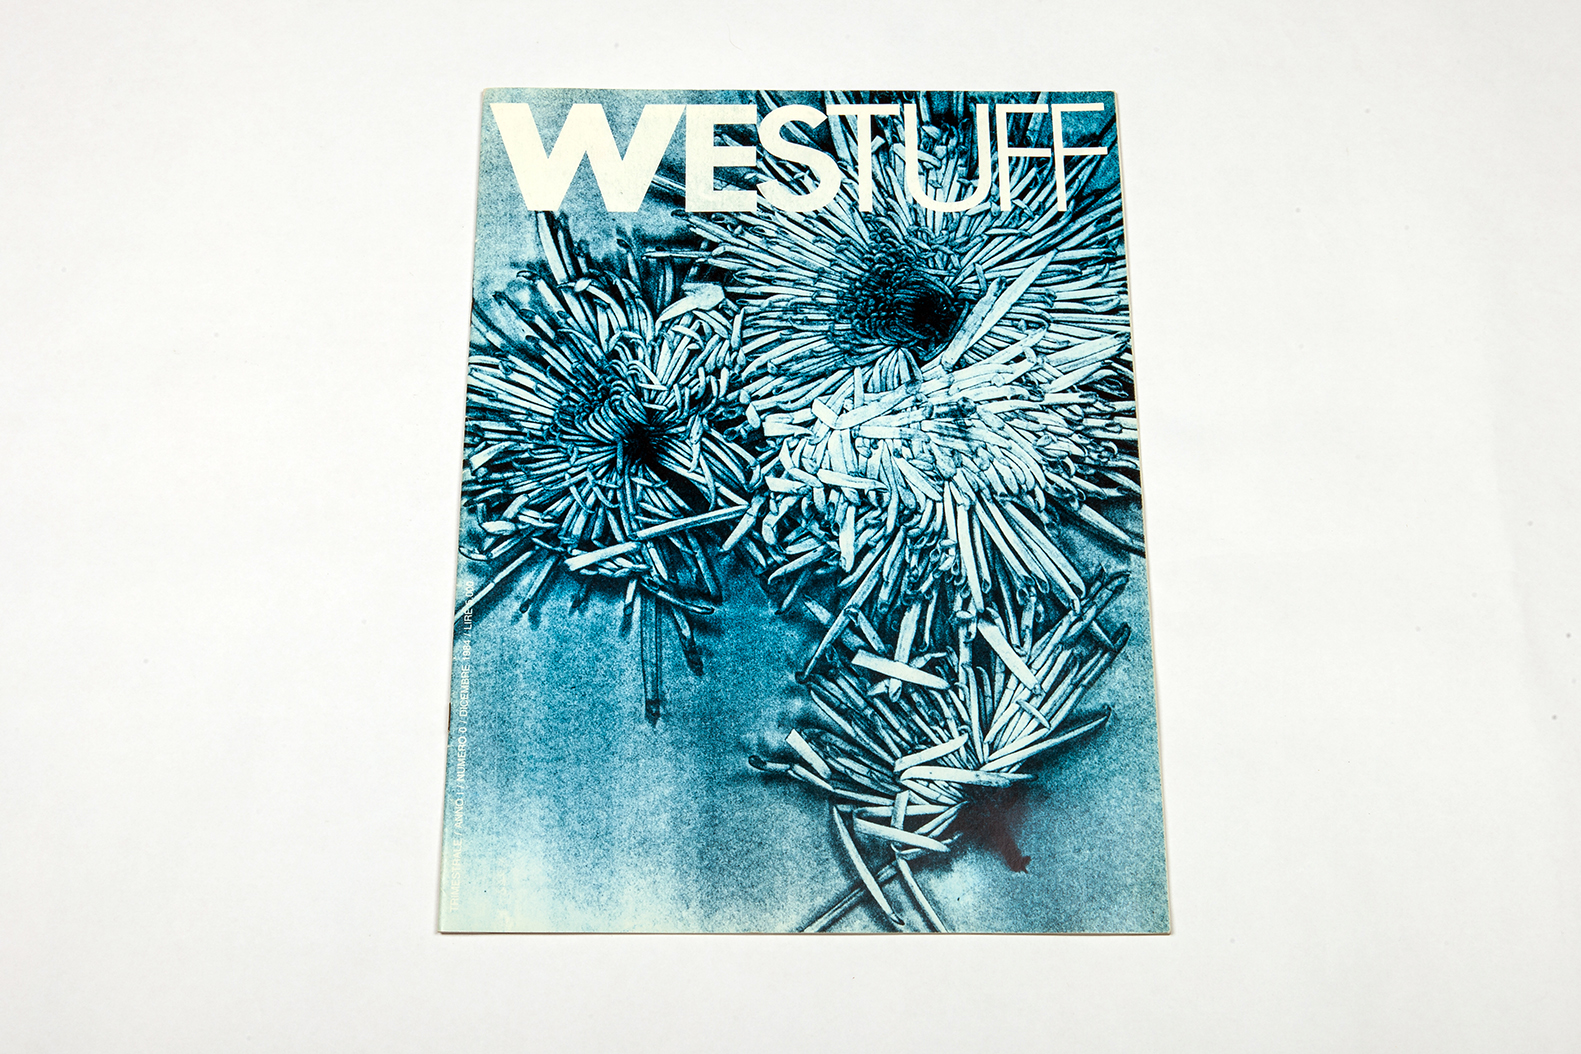 WESTUFF, December 1984. Source: Maria Luisa Friza